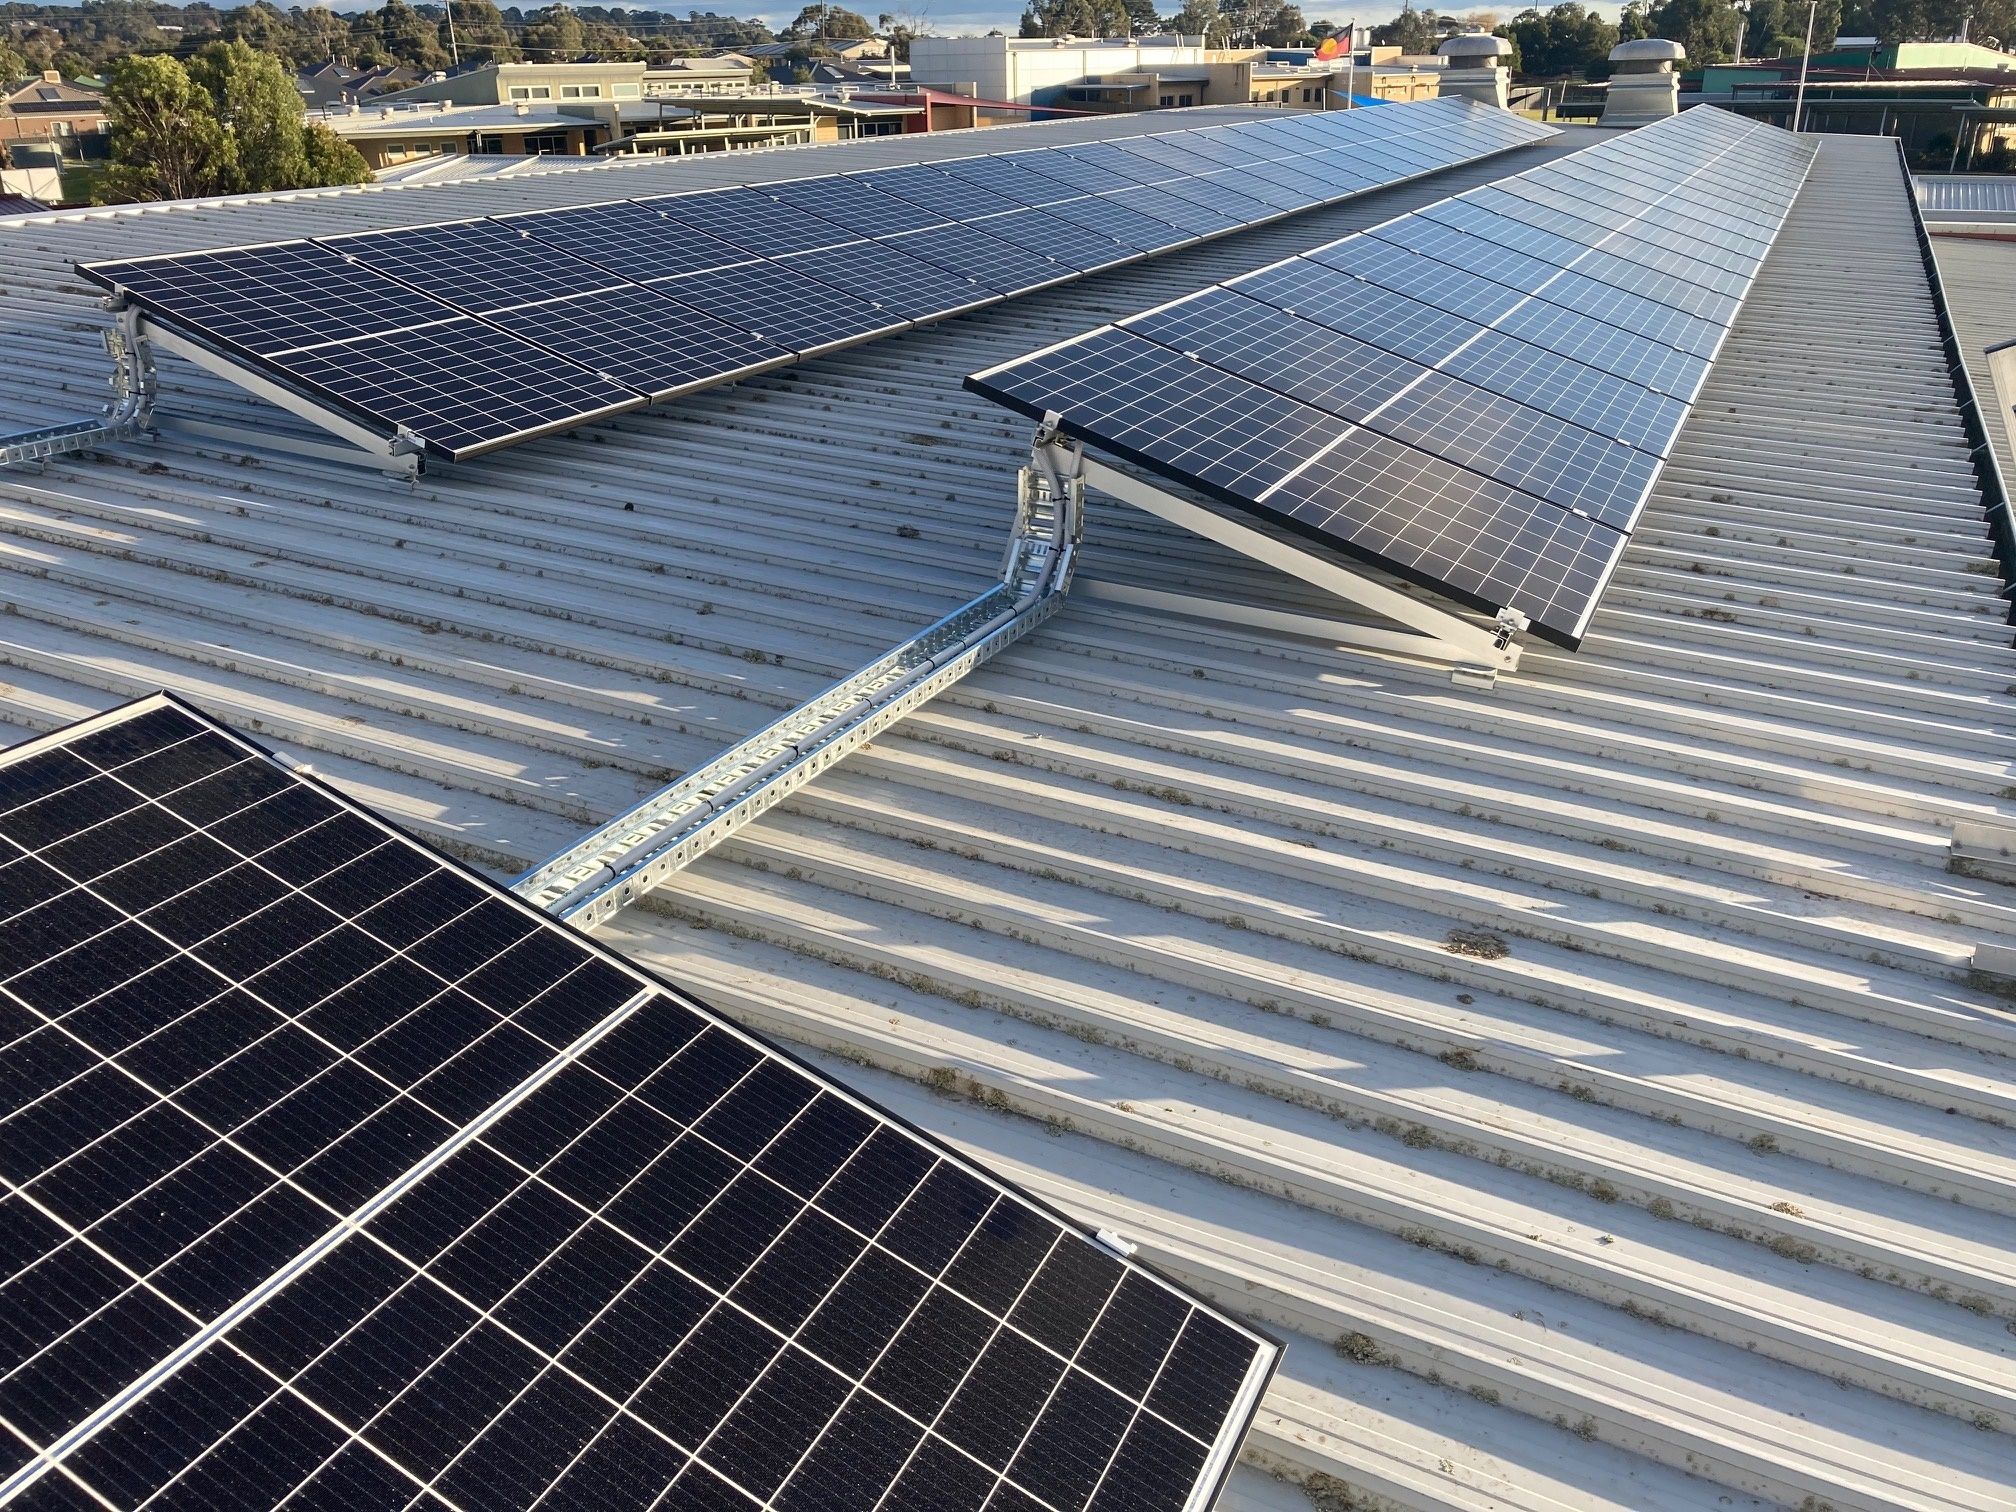 Colac Library Solar Array